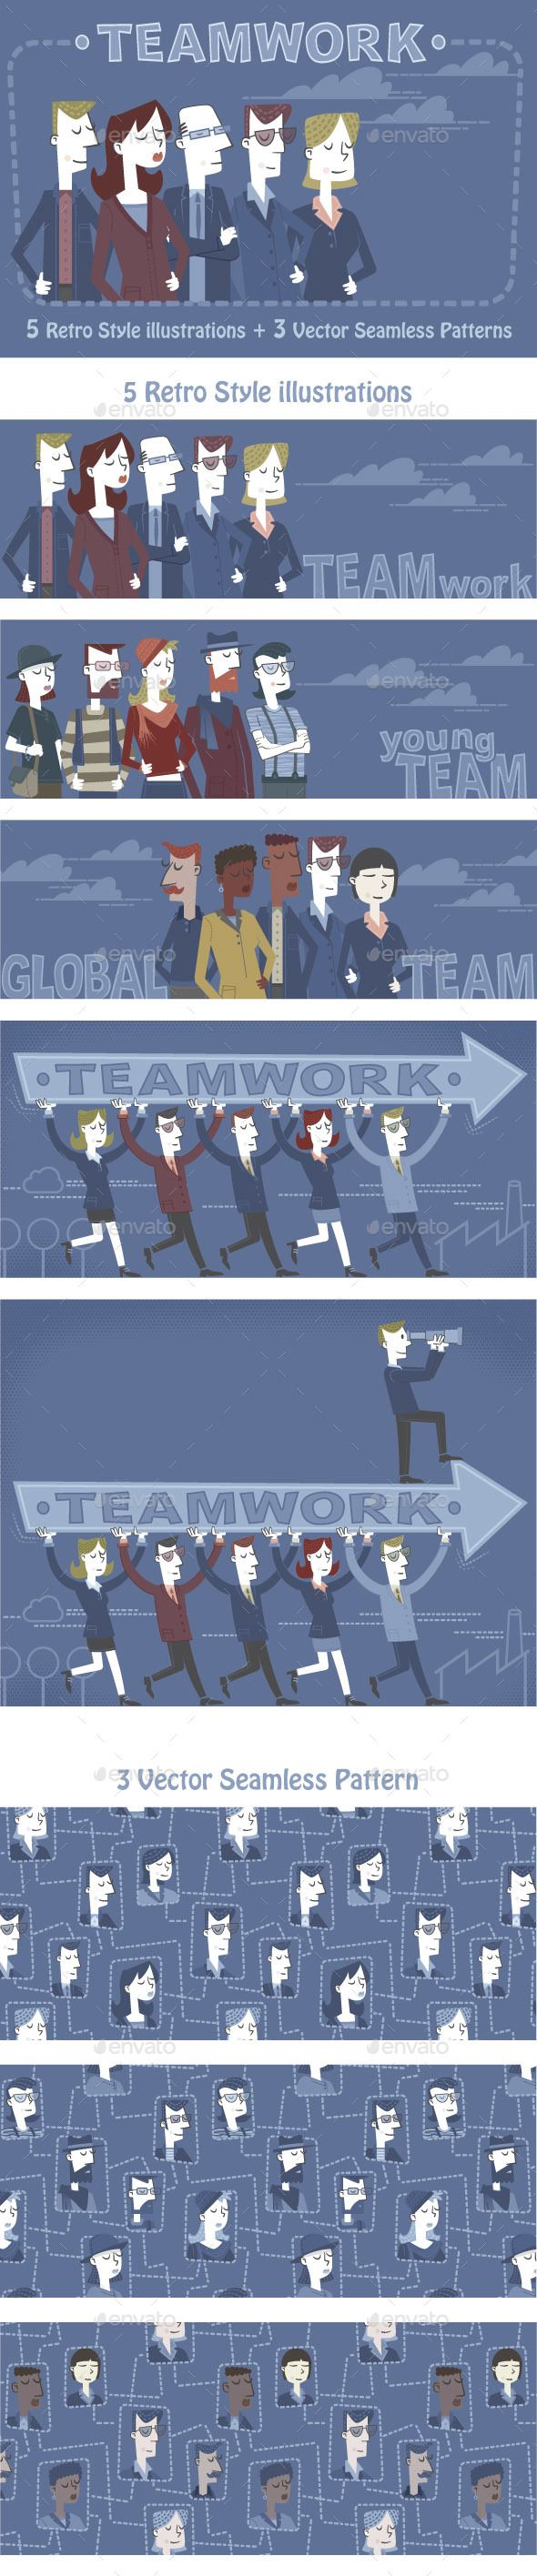 Teamwork Retro illustration, Teamwork, Seamless patterns